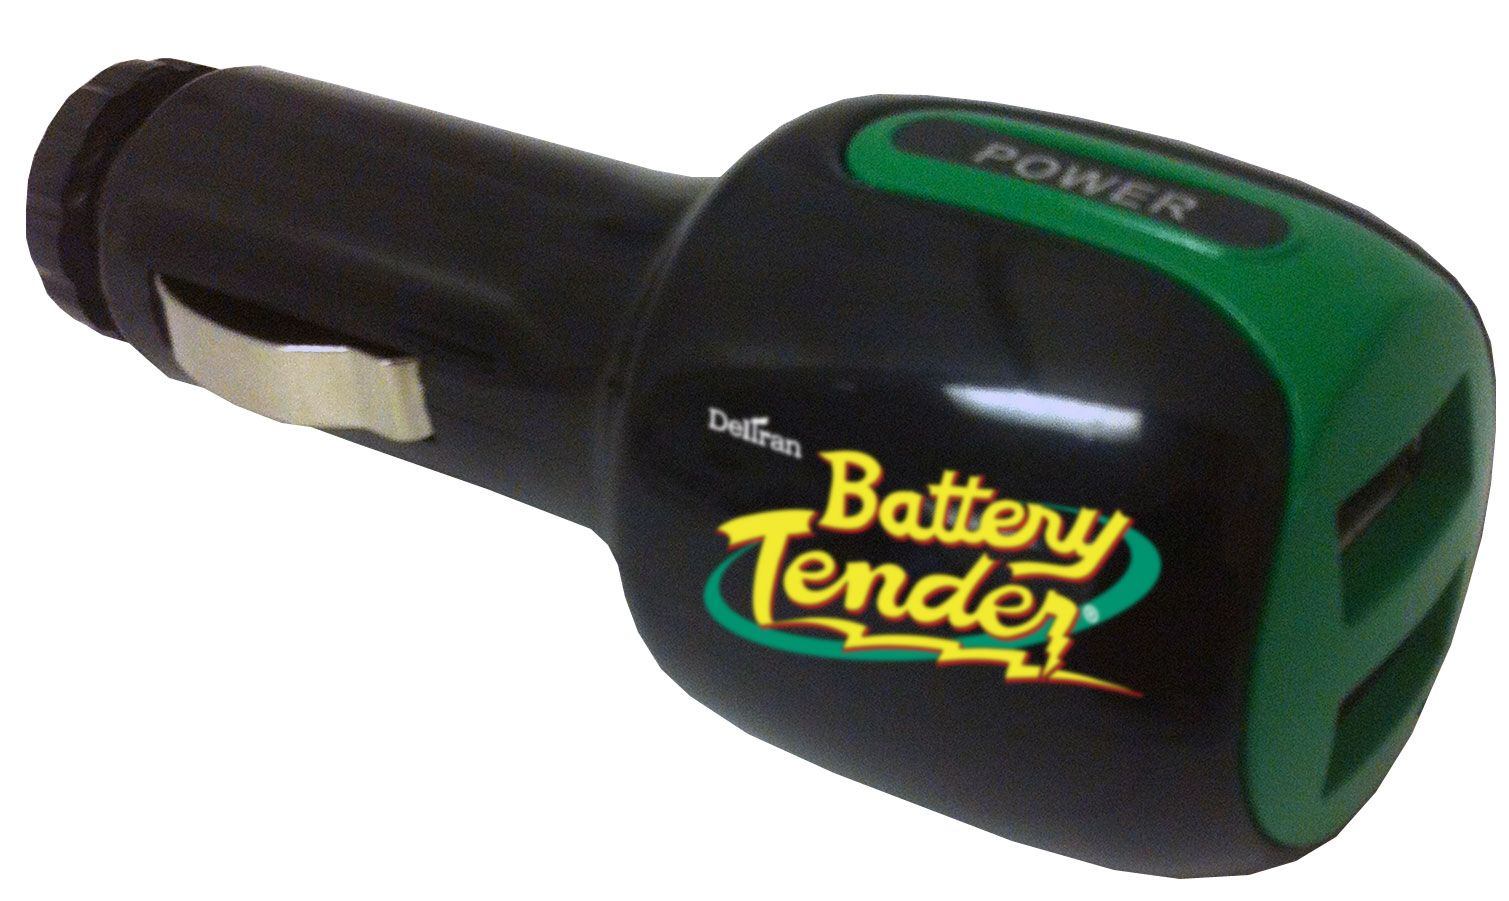 Battery tender plus image sciox Choice Image